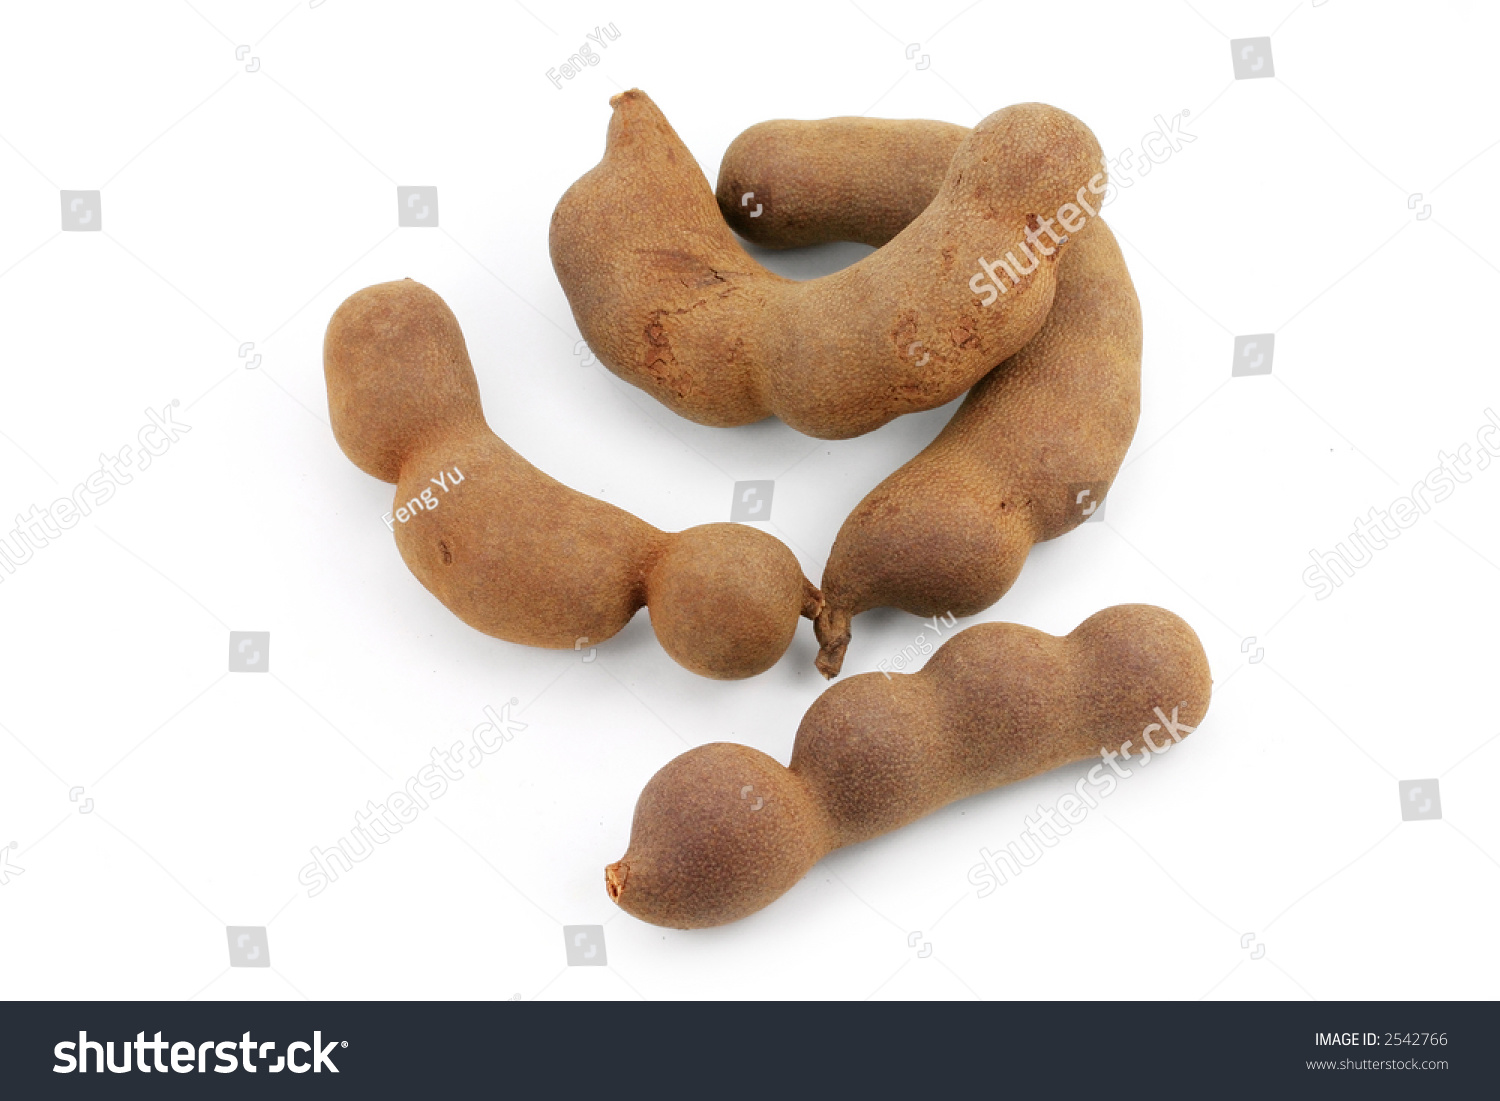 Tamarind. Tropical Fruit. With White Background Stock Photo 2542766 : Shutterstock